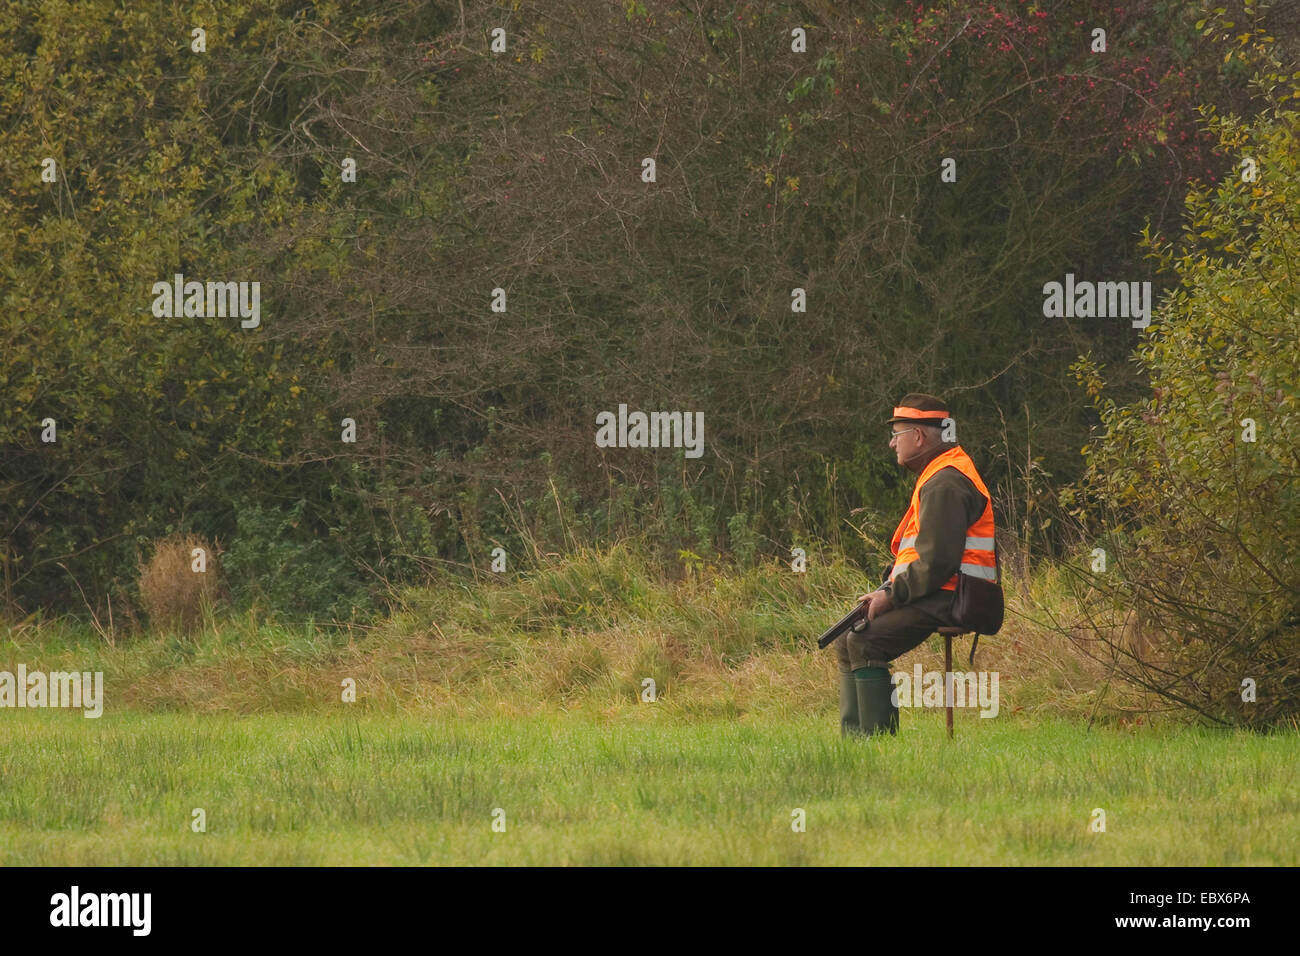 shooter sitting and waiting on a stool in a meadow during a battue in October, Germany - Stock Image